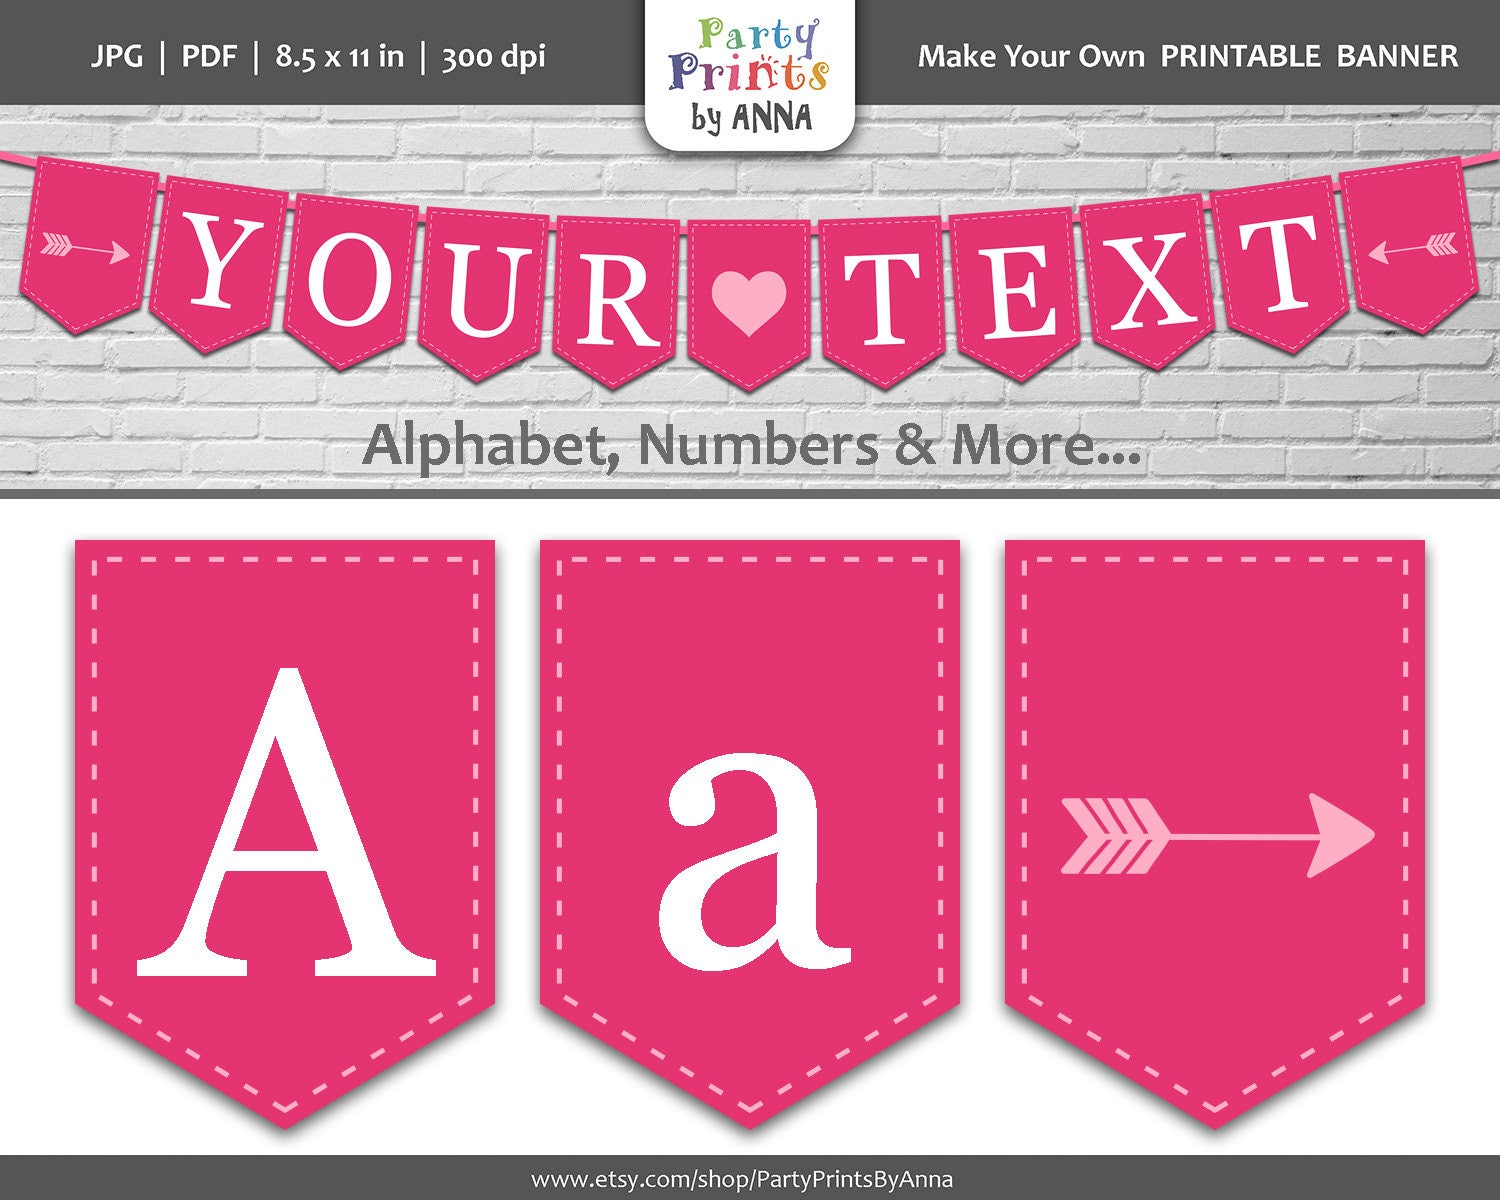 Pink printable bunting banner alphabet letters spearhead banner bunting pennant flag bannerhot pink a z letters numbers party printable